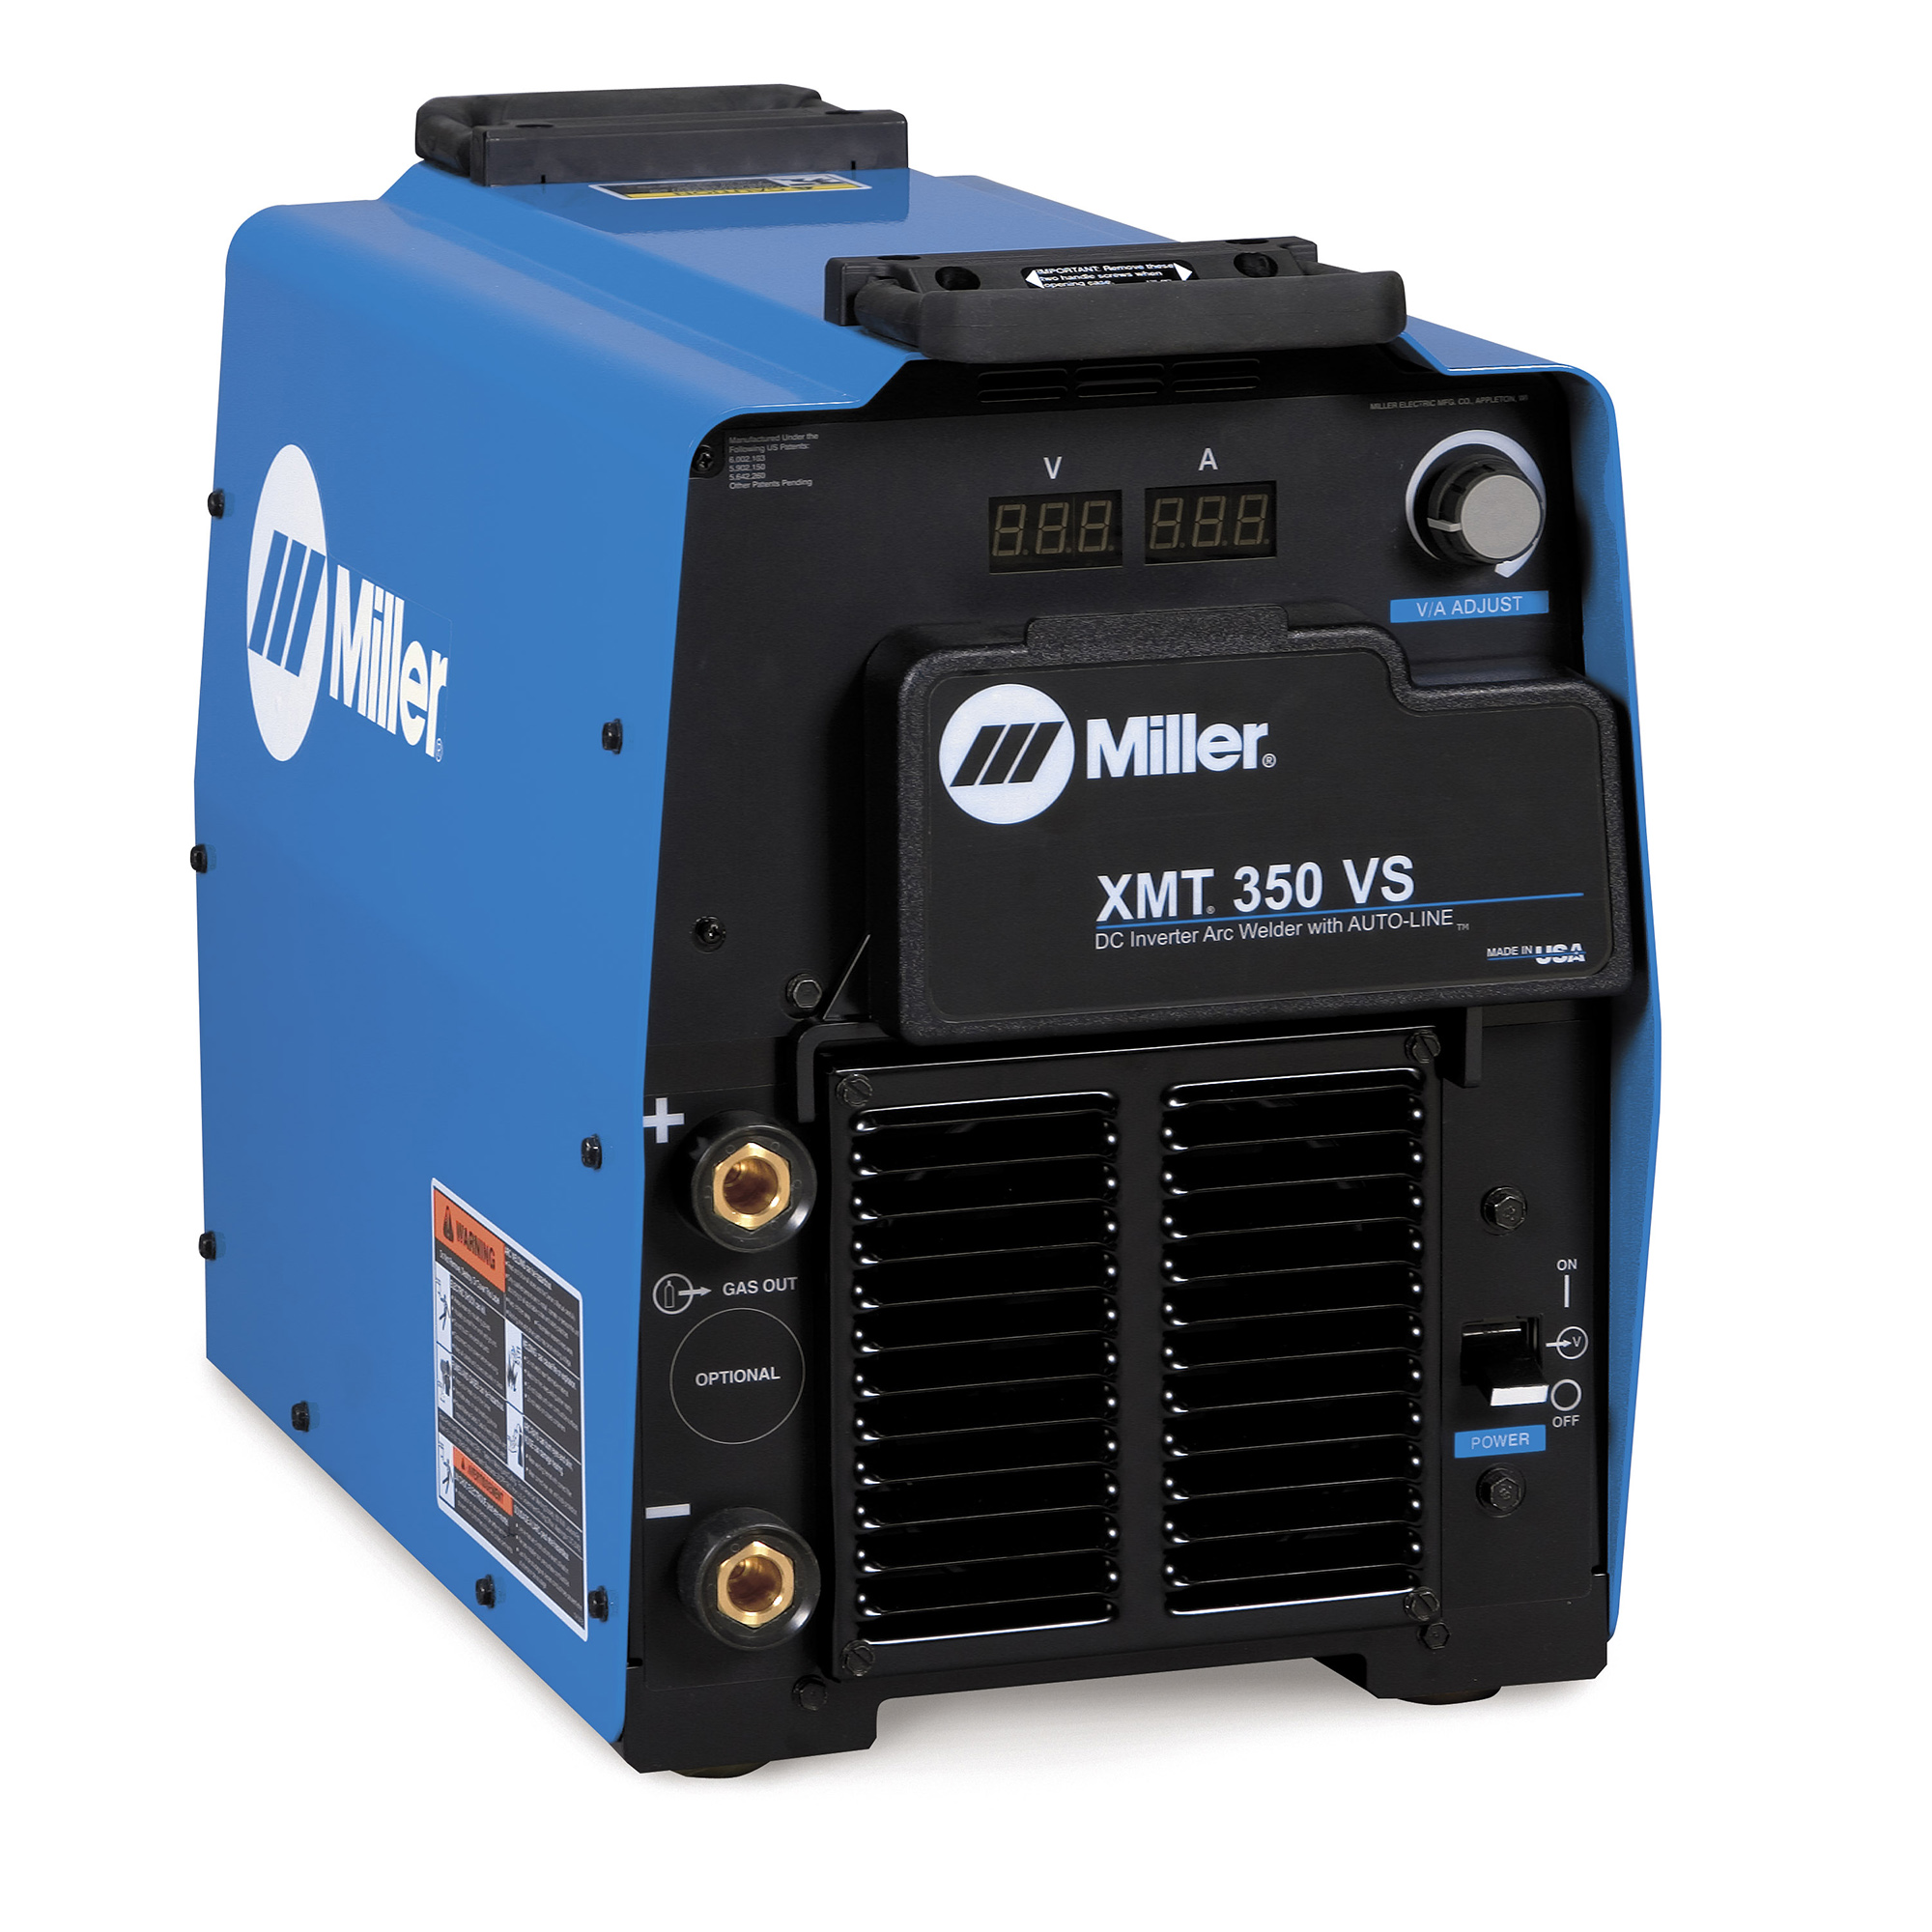 Miller Electric XMT 350 VS Multi-process welding